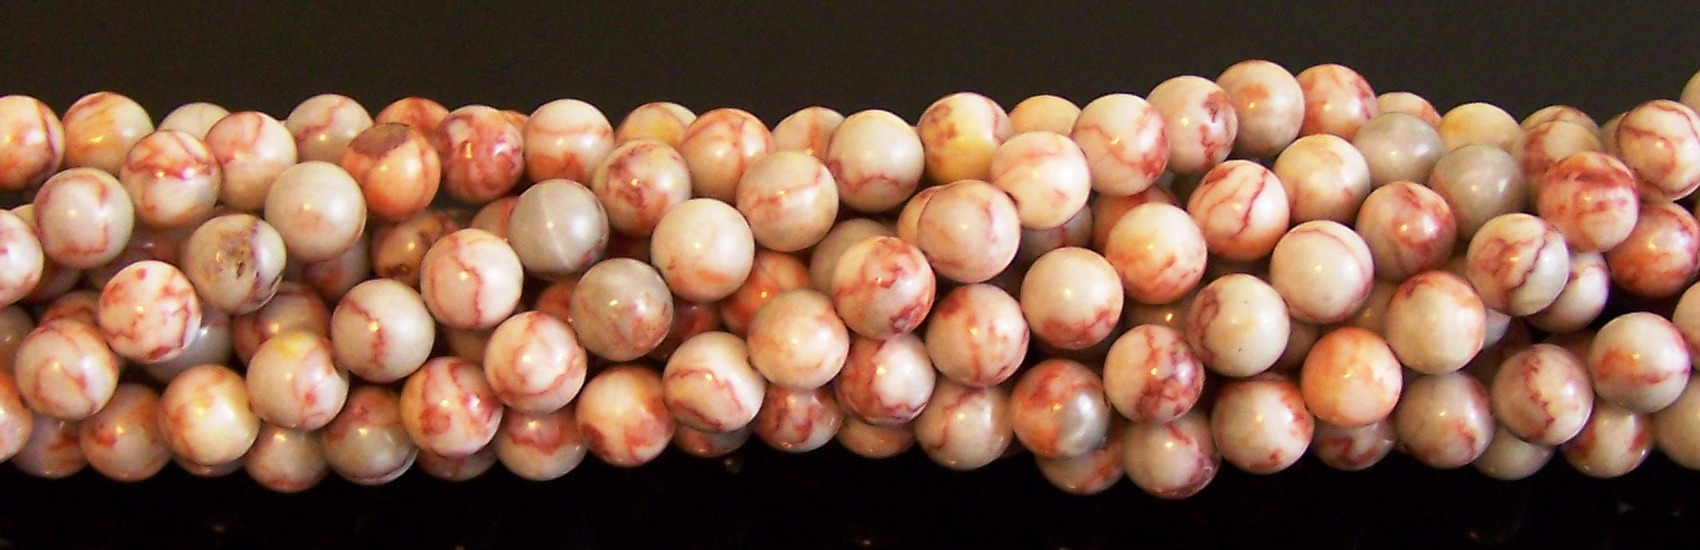 Red Map Jasper Semiprecious Gemstone Beads